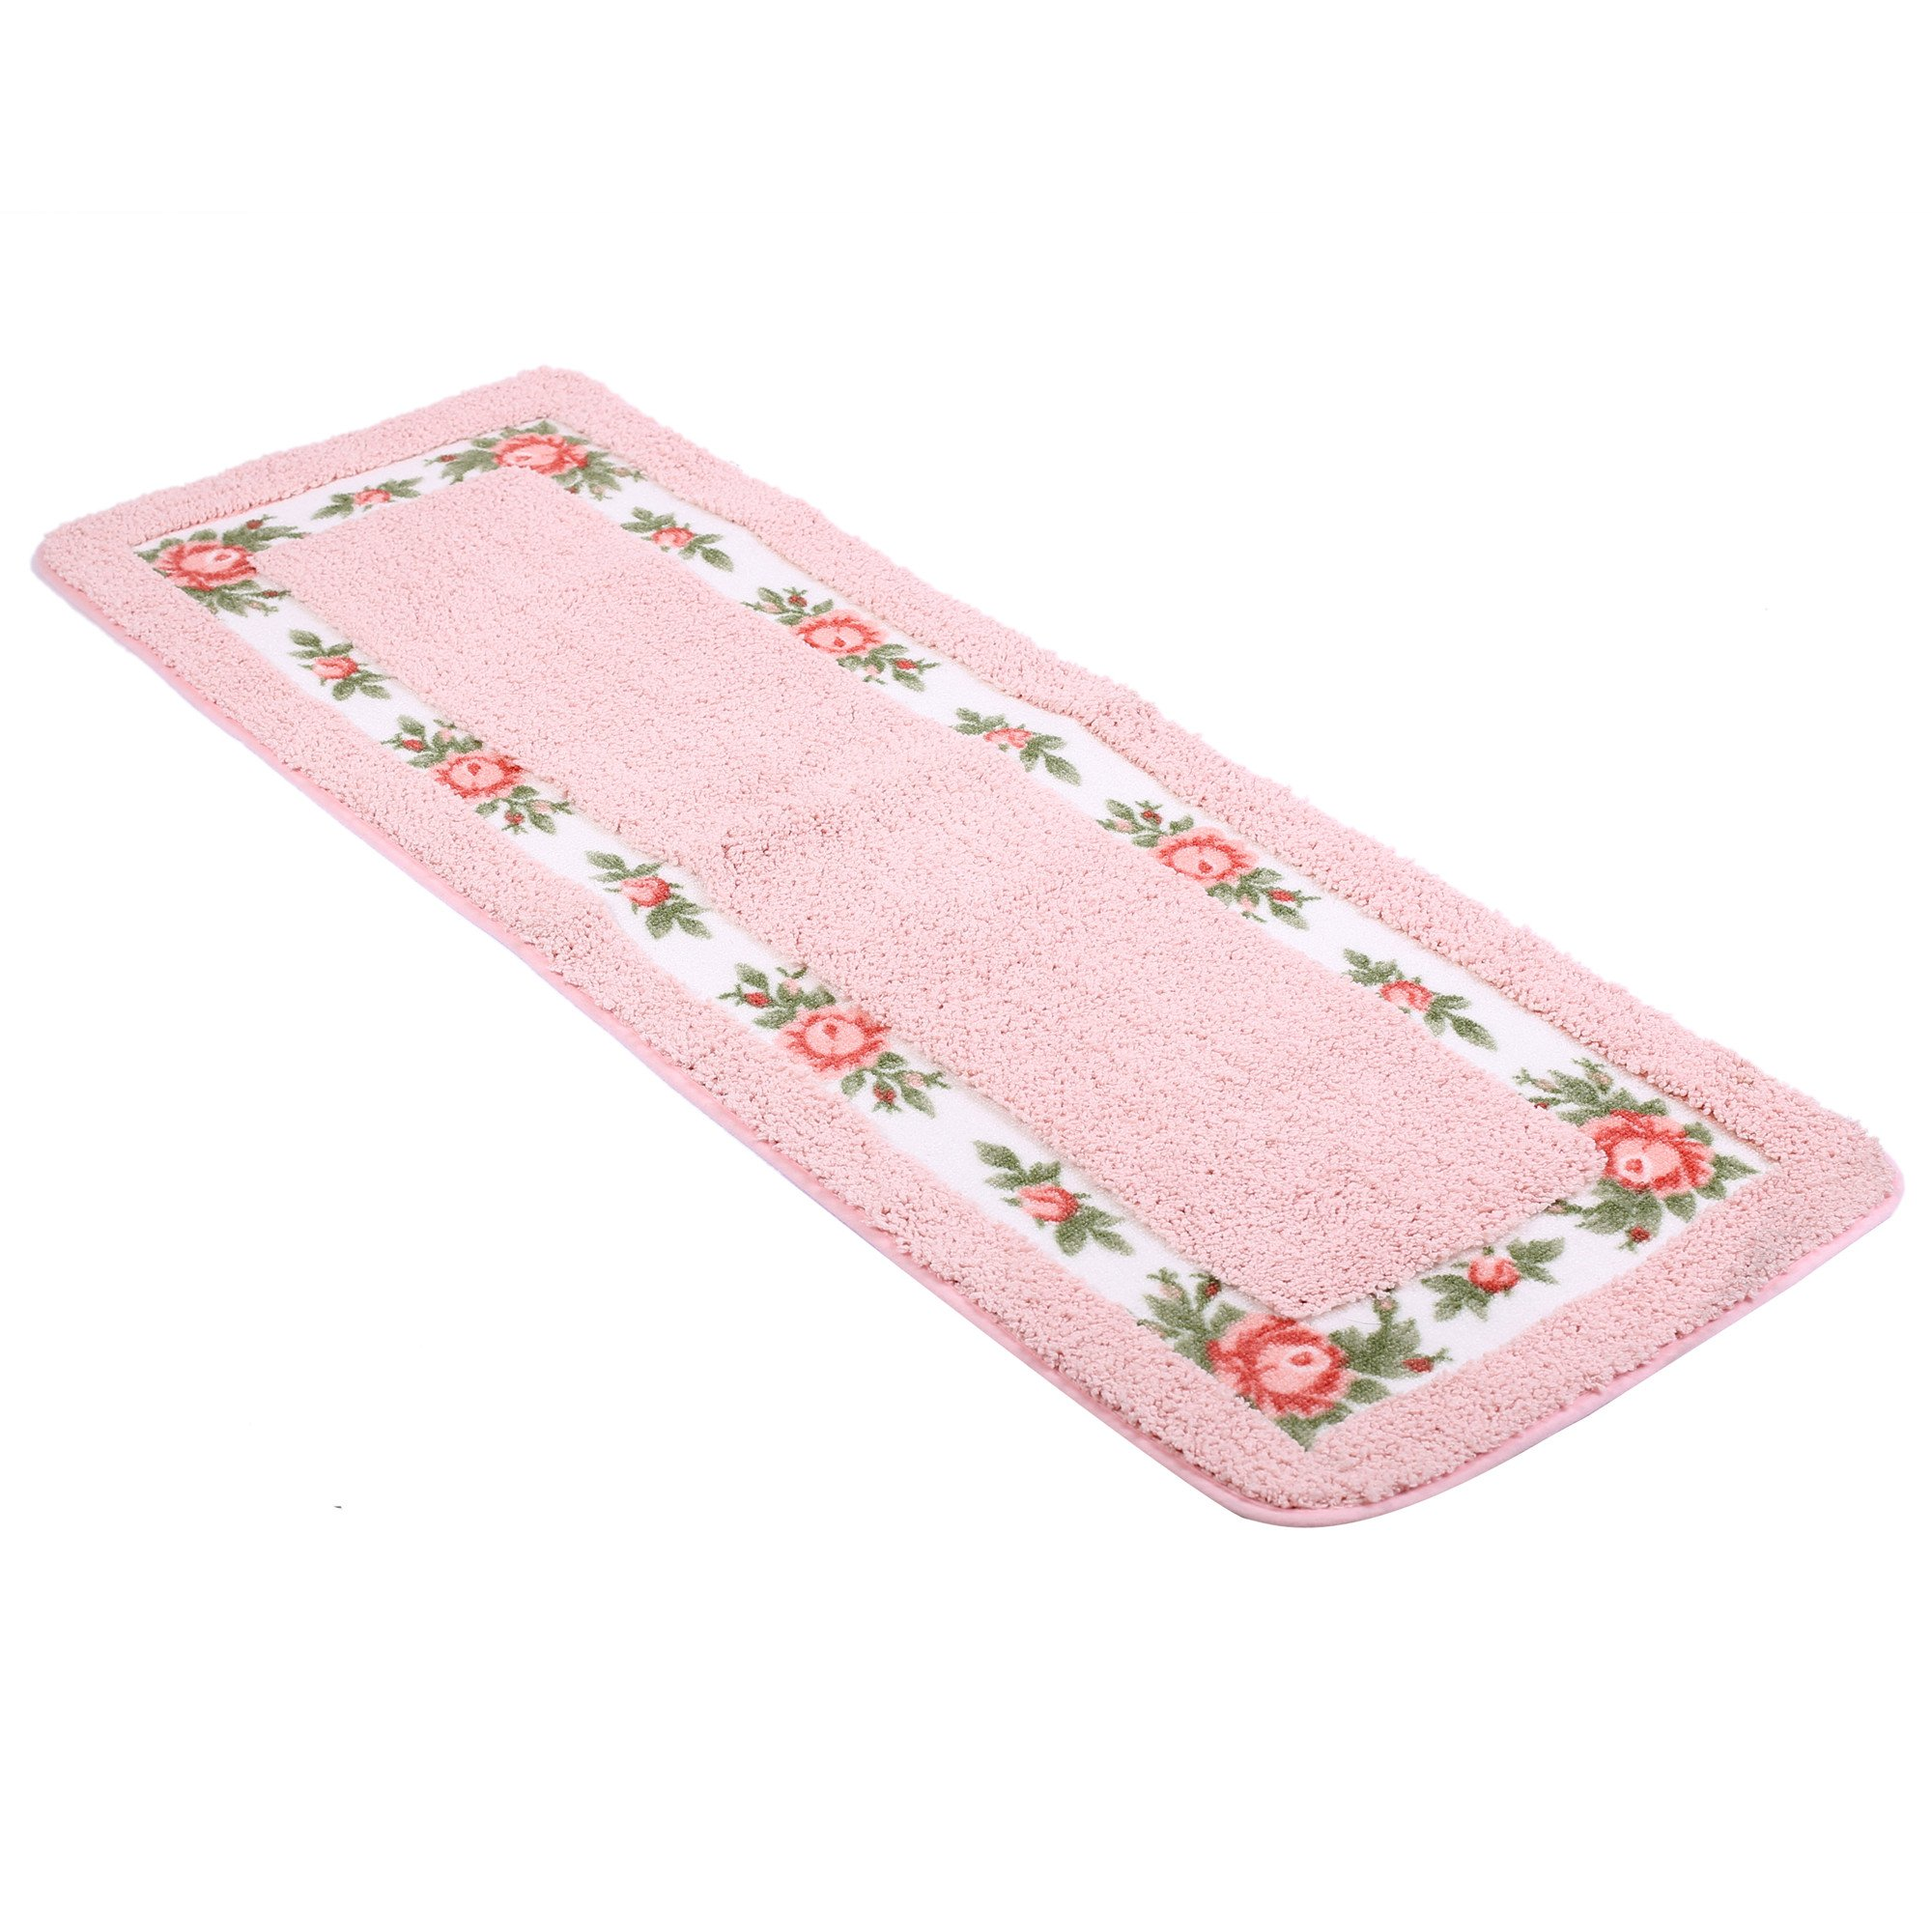 JSJ_CHENG Rustic Rectangular Decor Rose Floral Nonslid Bathroom Kitchen Area Rugs (17.7inch by 47.2inch, Pink)